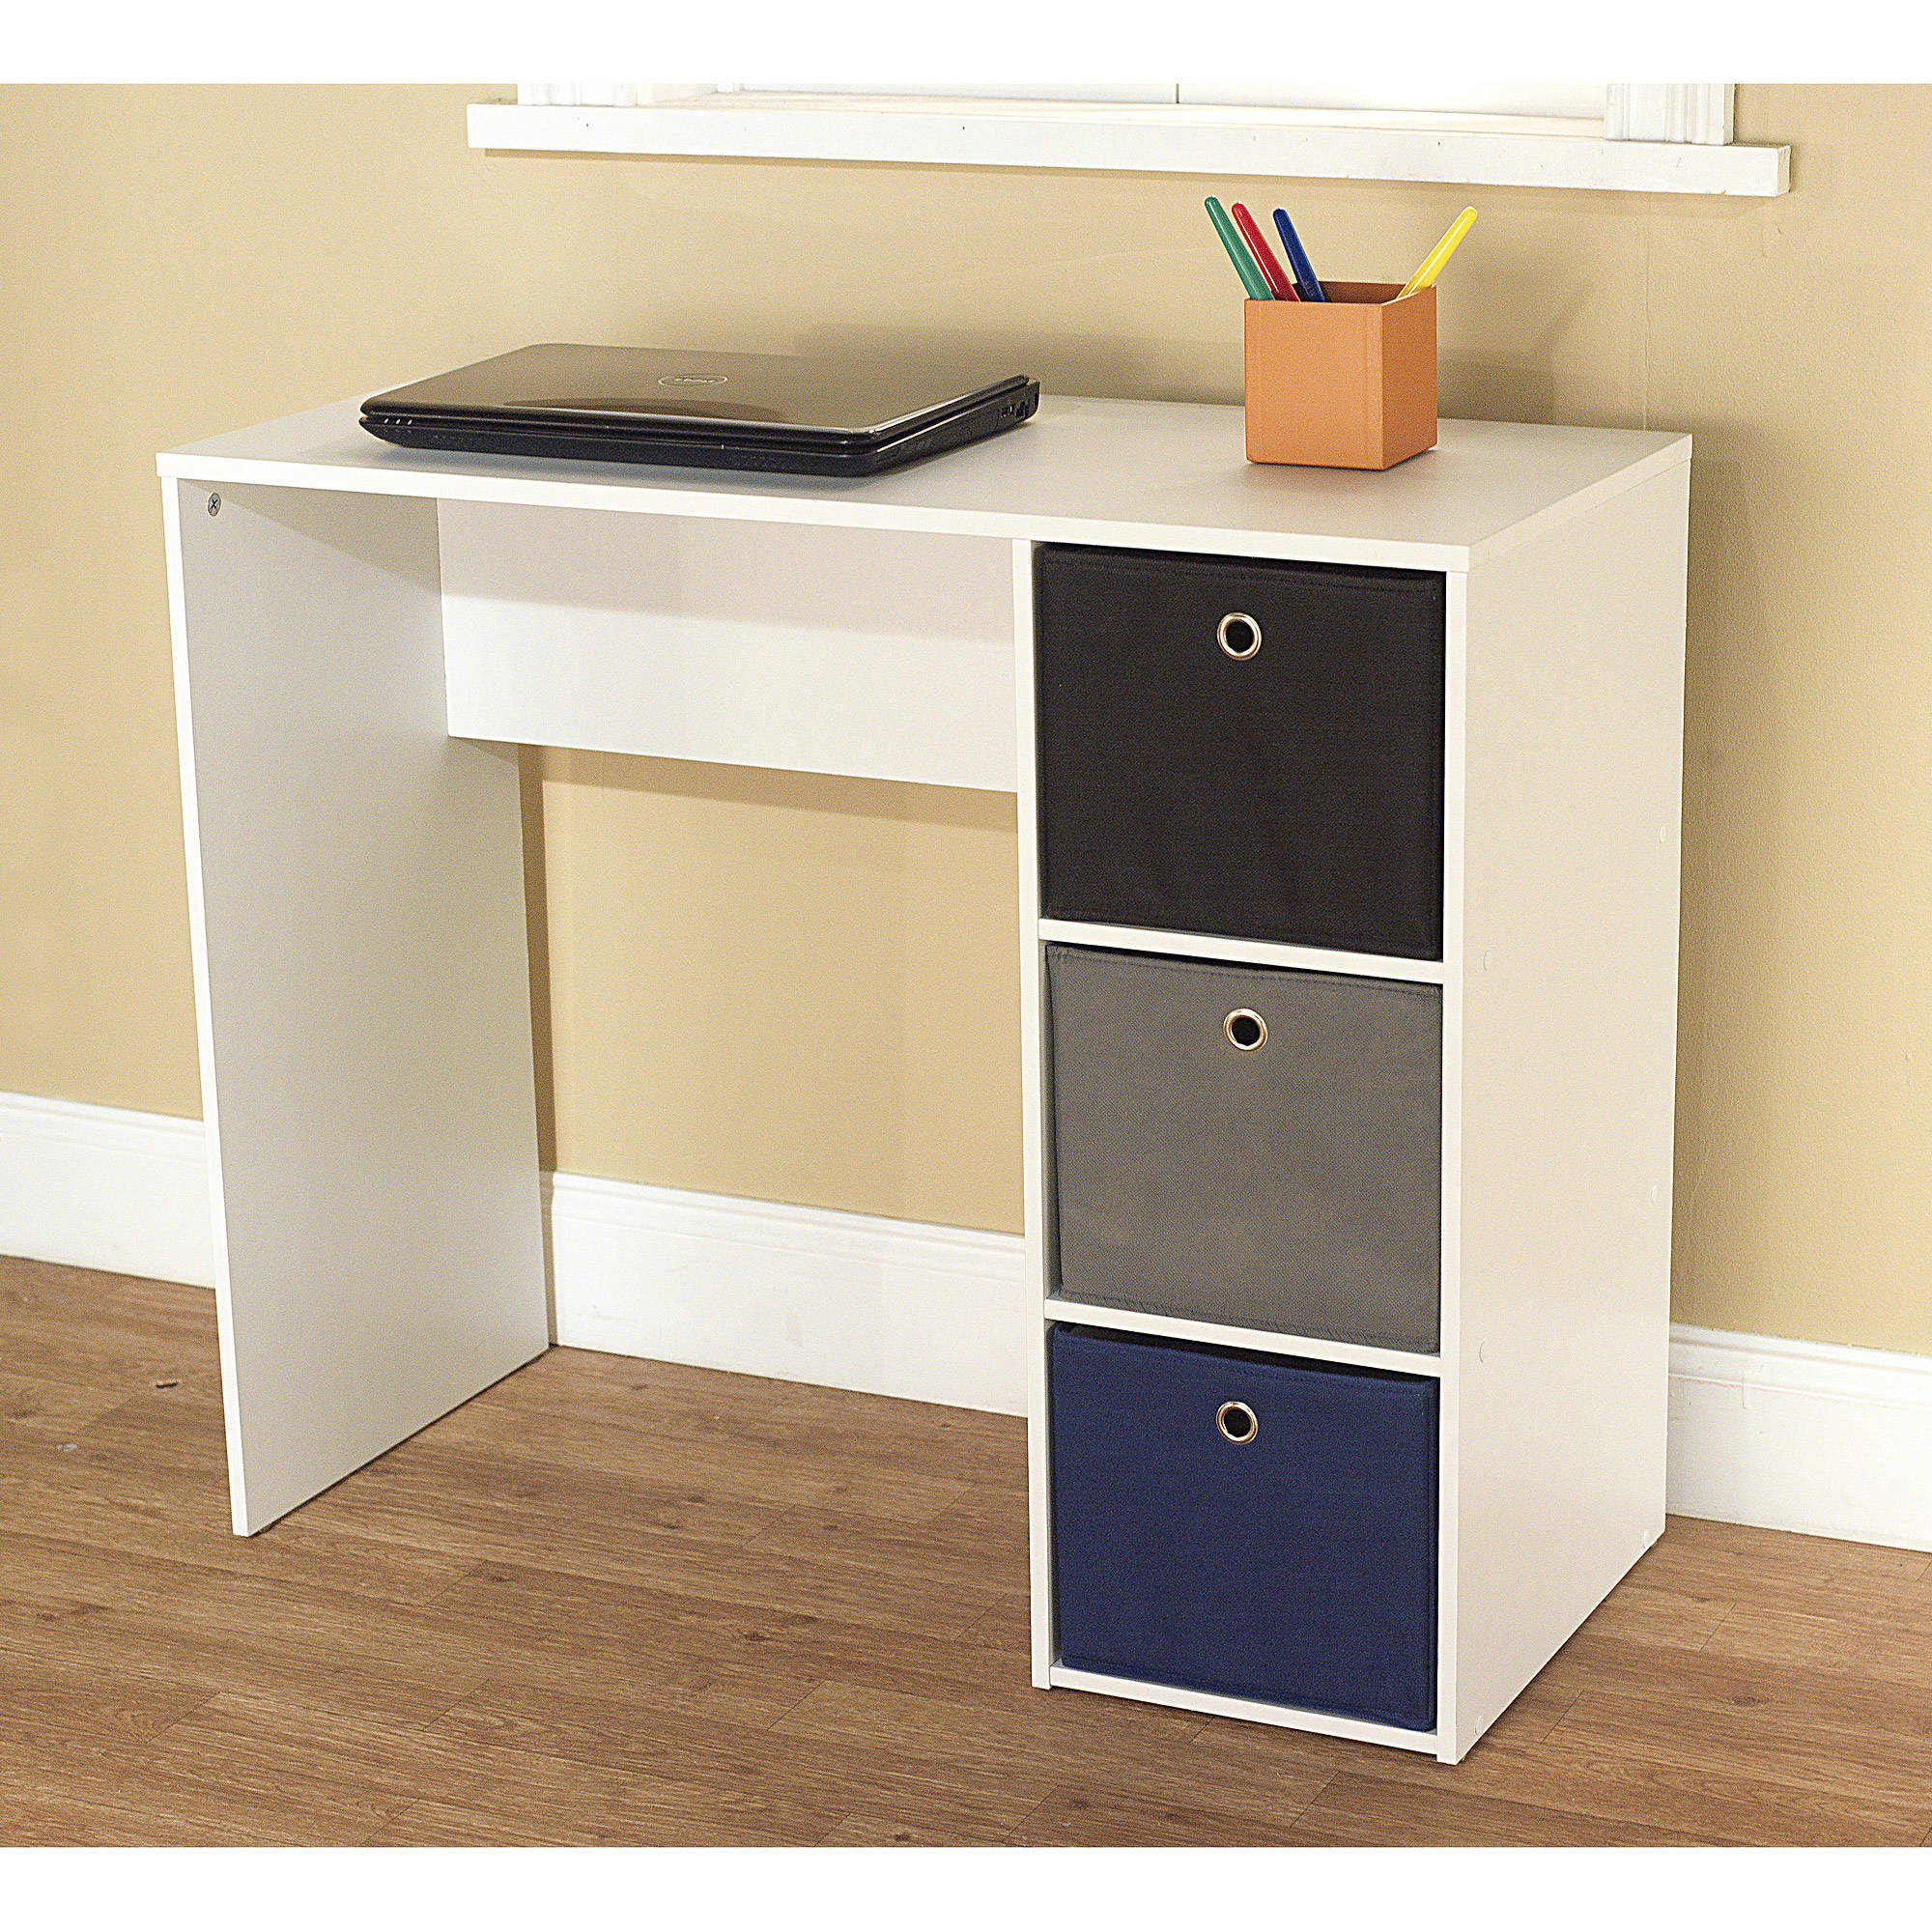 student writing desk with 3 fabric bins multiple colors